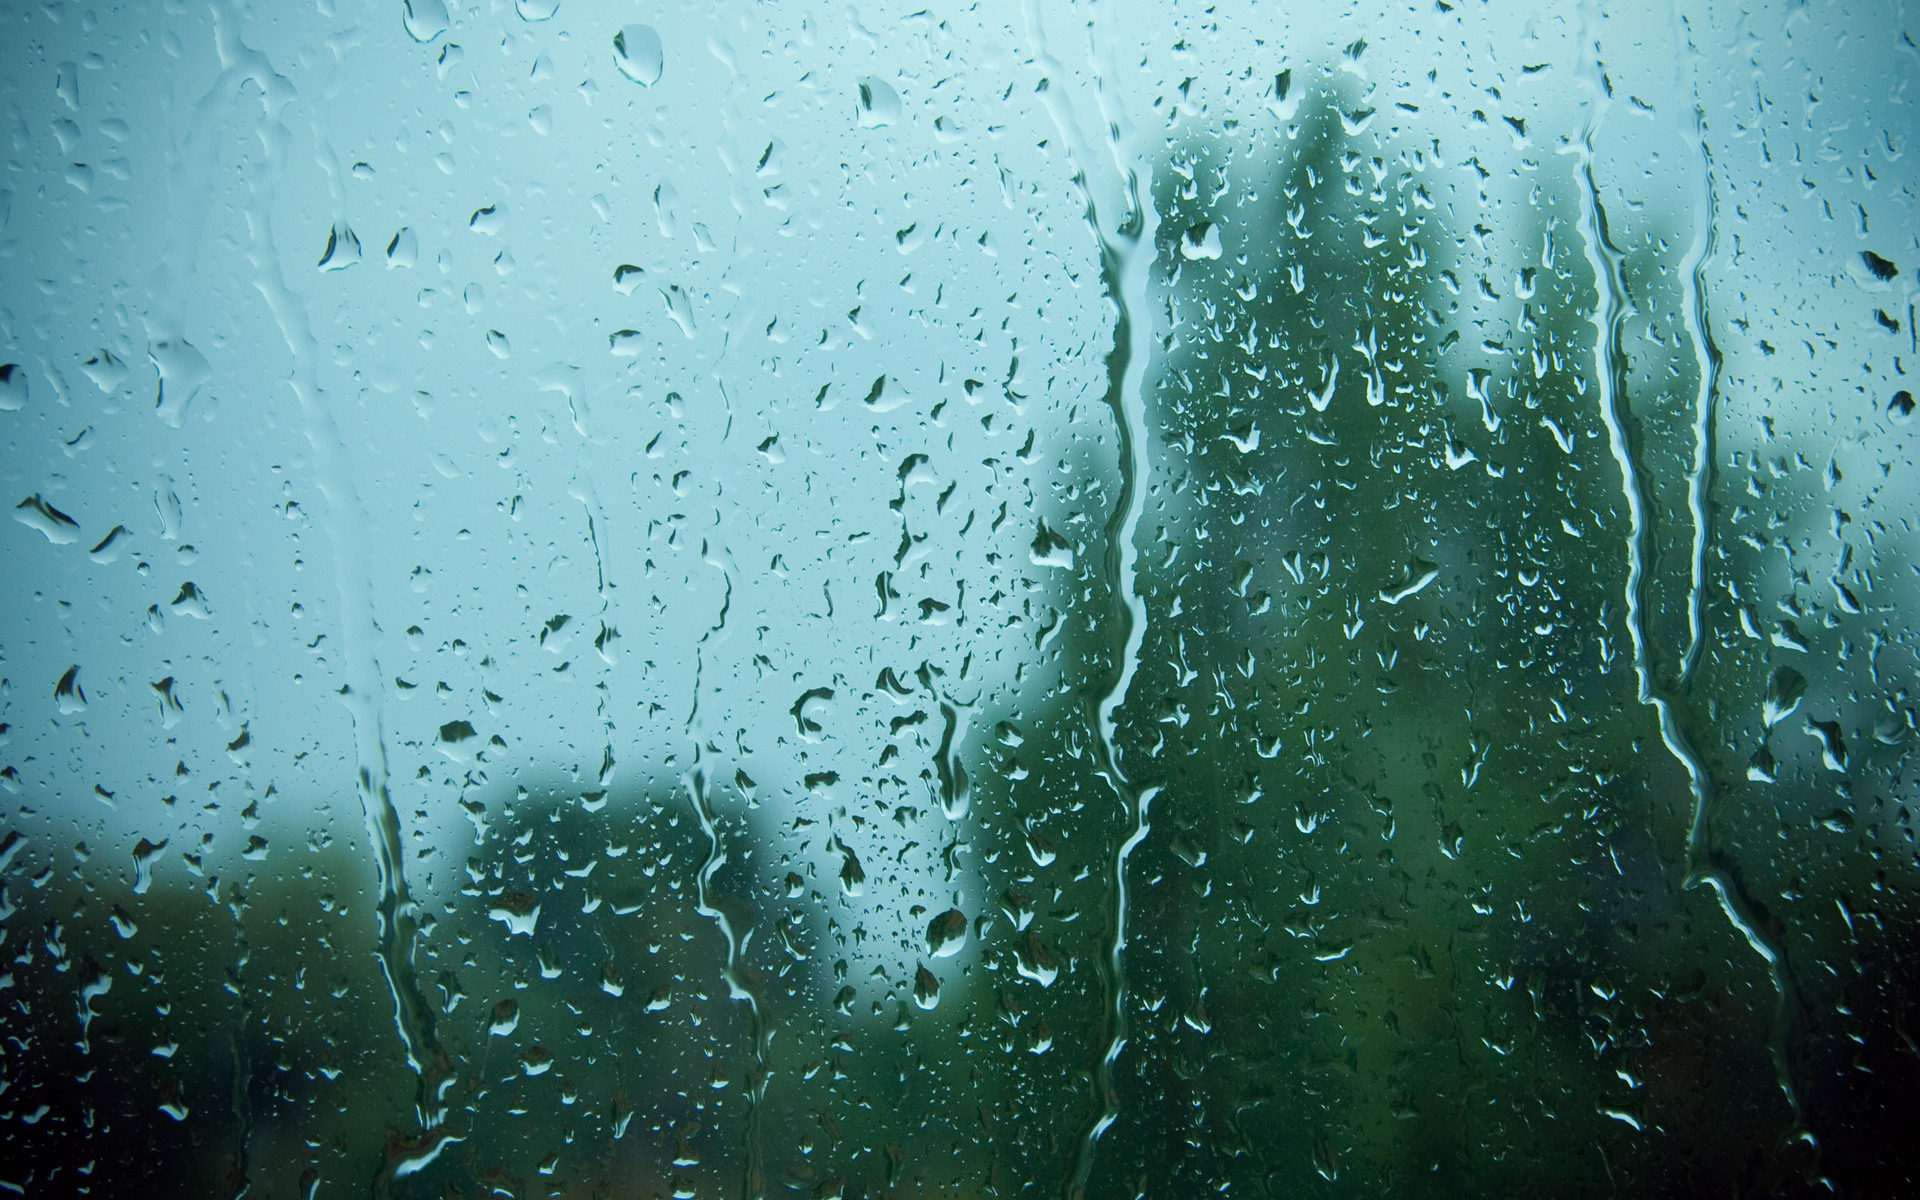 rain on window hd wallpaper you are viewing the abstract wallpaper 1920x1200